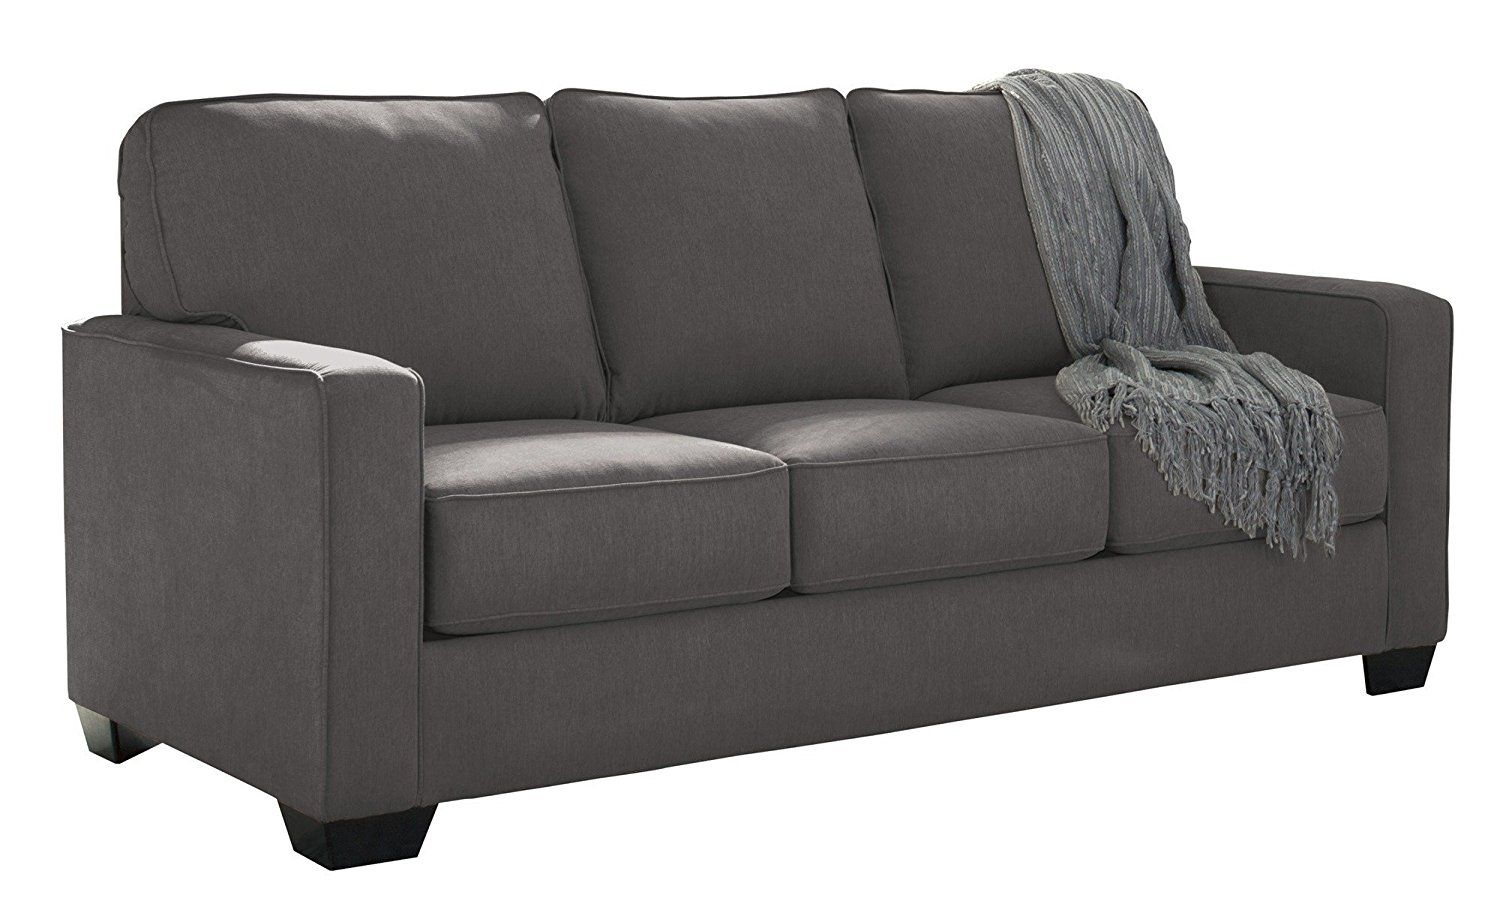 Pin On Sofa Pull Out Beds